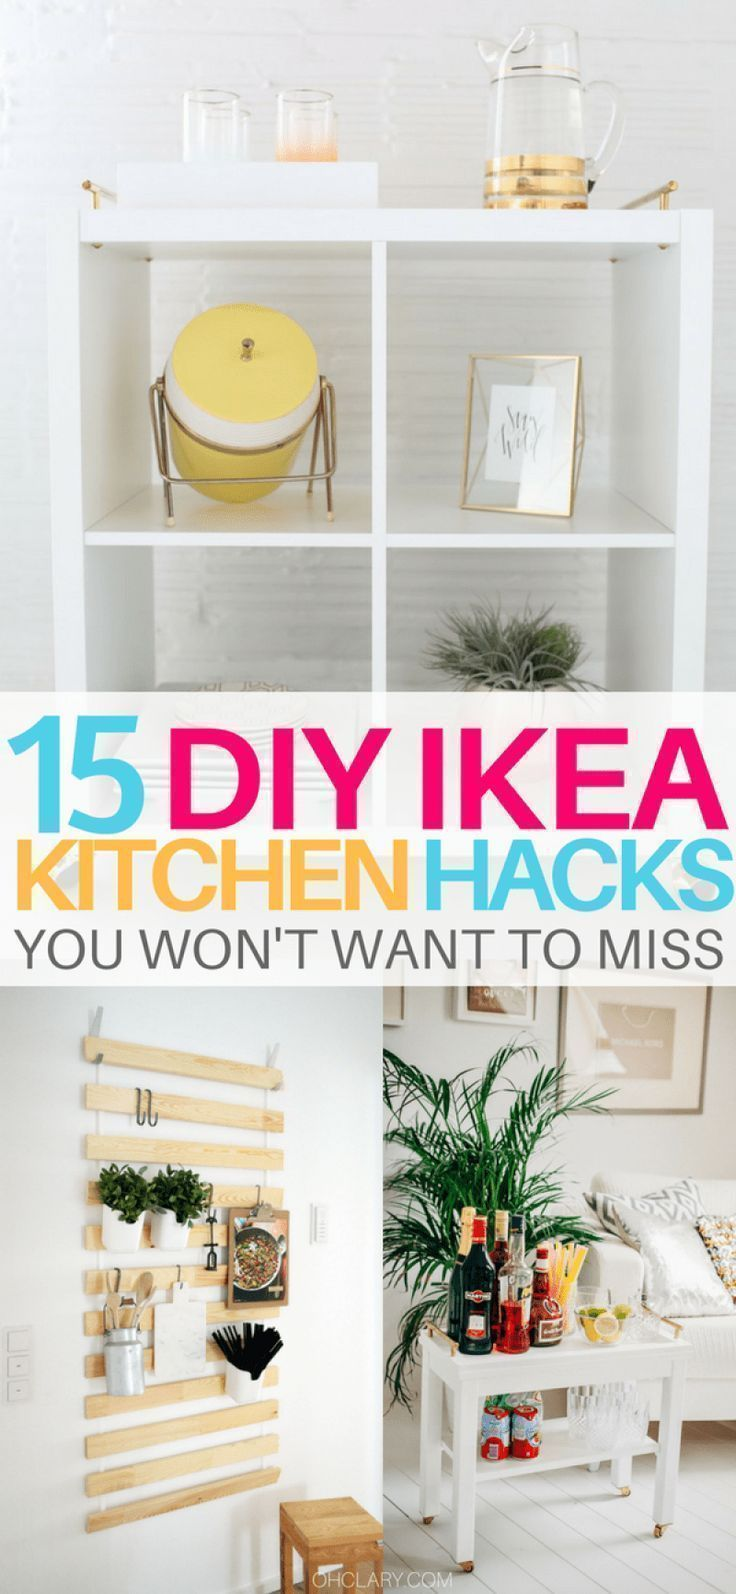 diy ikea furniture. Are You Looking To Upgrade Your IKEA Furniture With Some Simple Hacks? These 15 Ikea Kitchen Hacks Will Make Gorgeous While Staying On\u2026 Diy